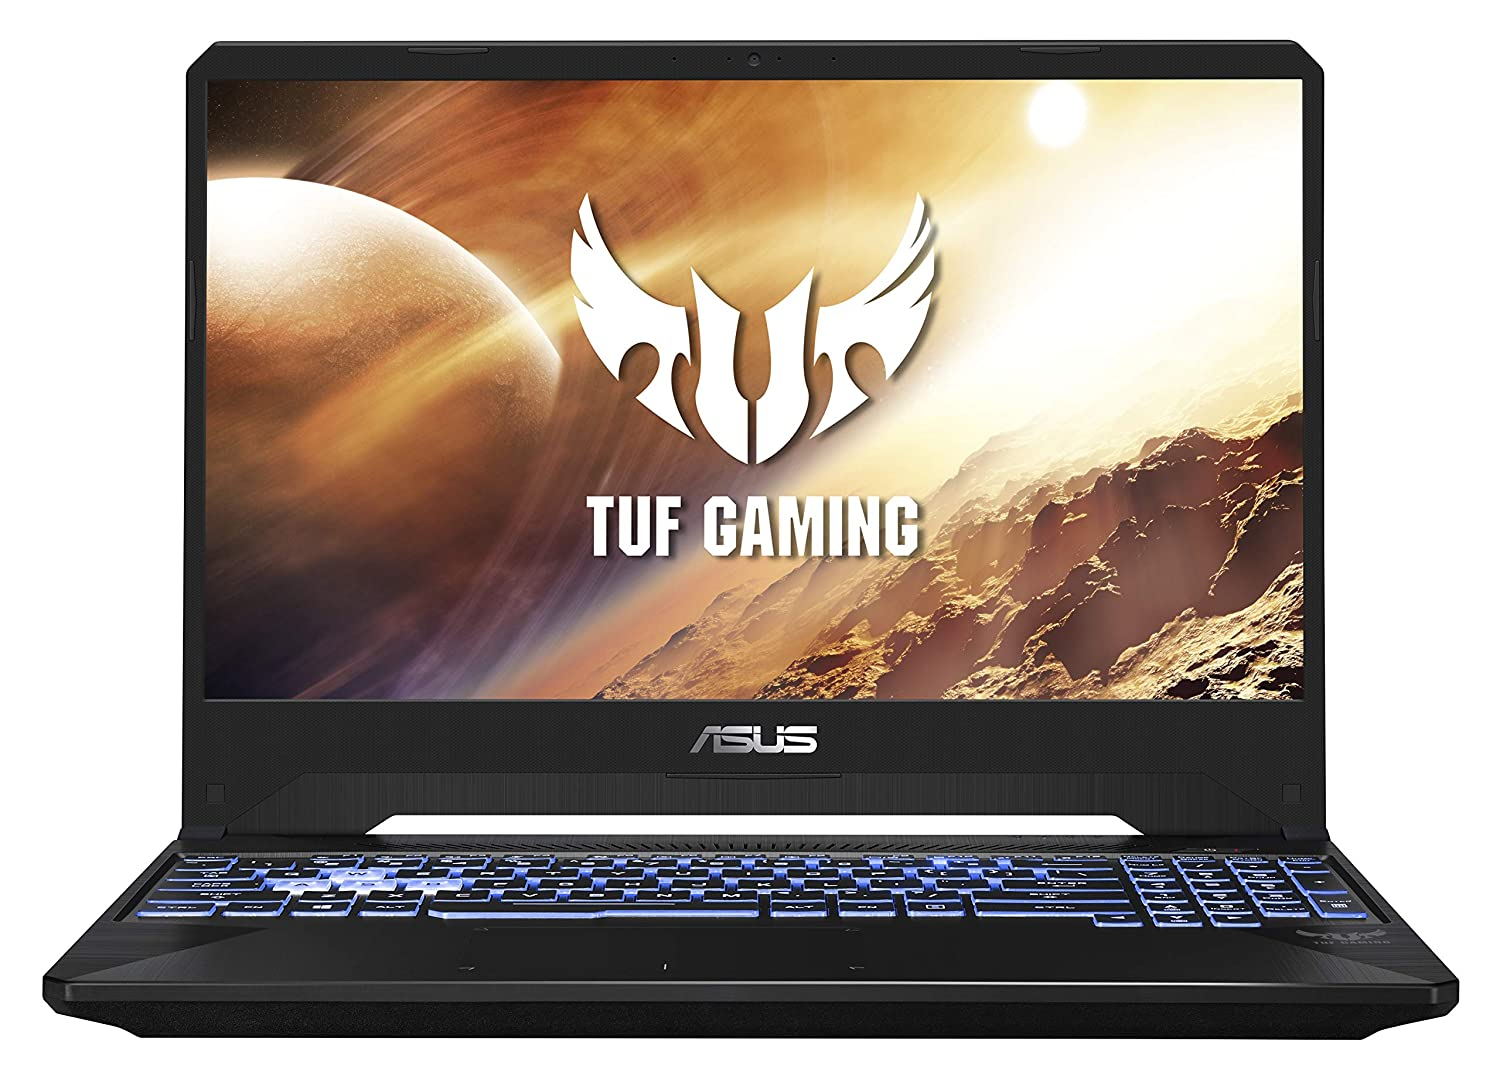 ASUS TUF Gaming FX505DT-BQ151T Laptop with Backpack